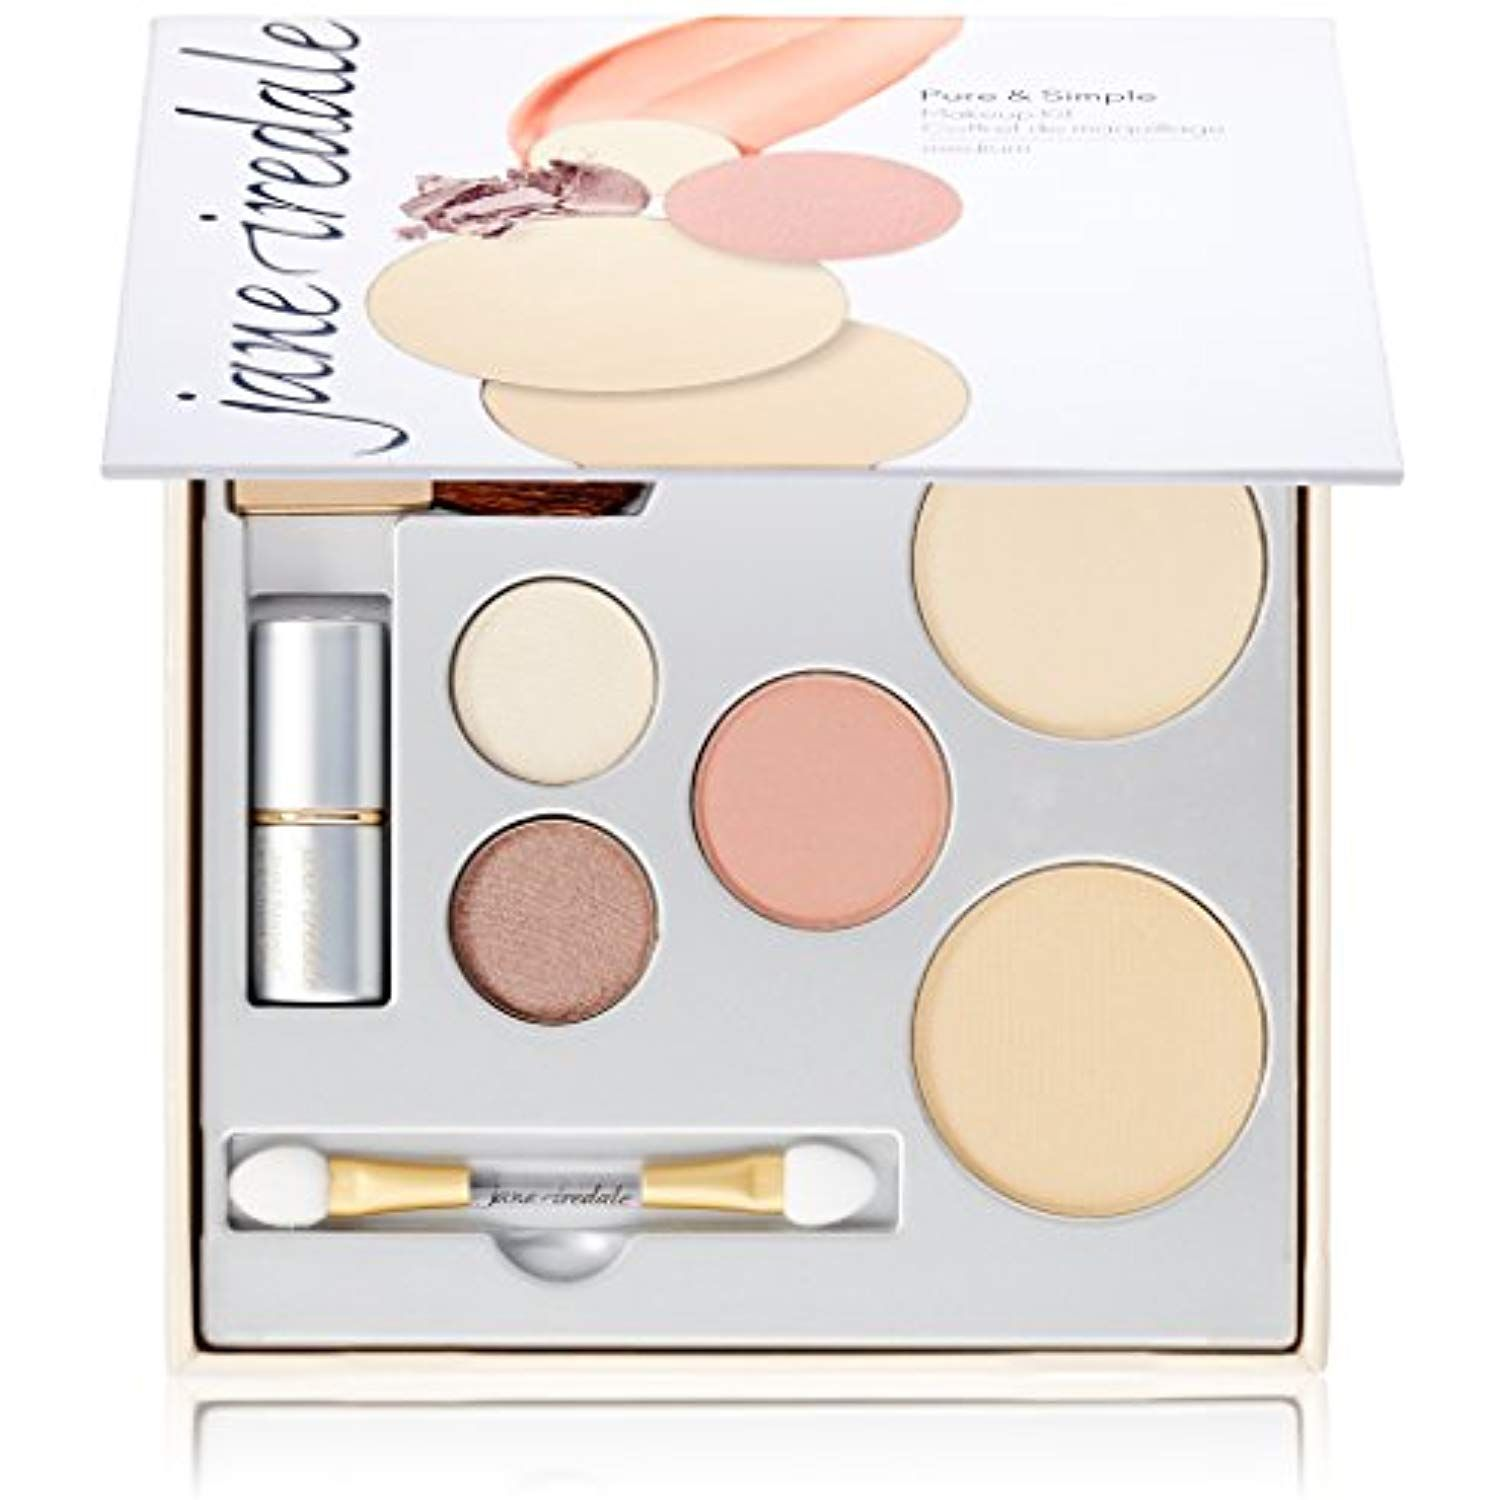 jane iredale Pure FoundationMakeup Simple makeup